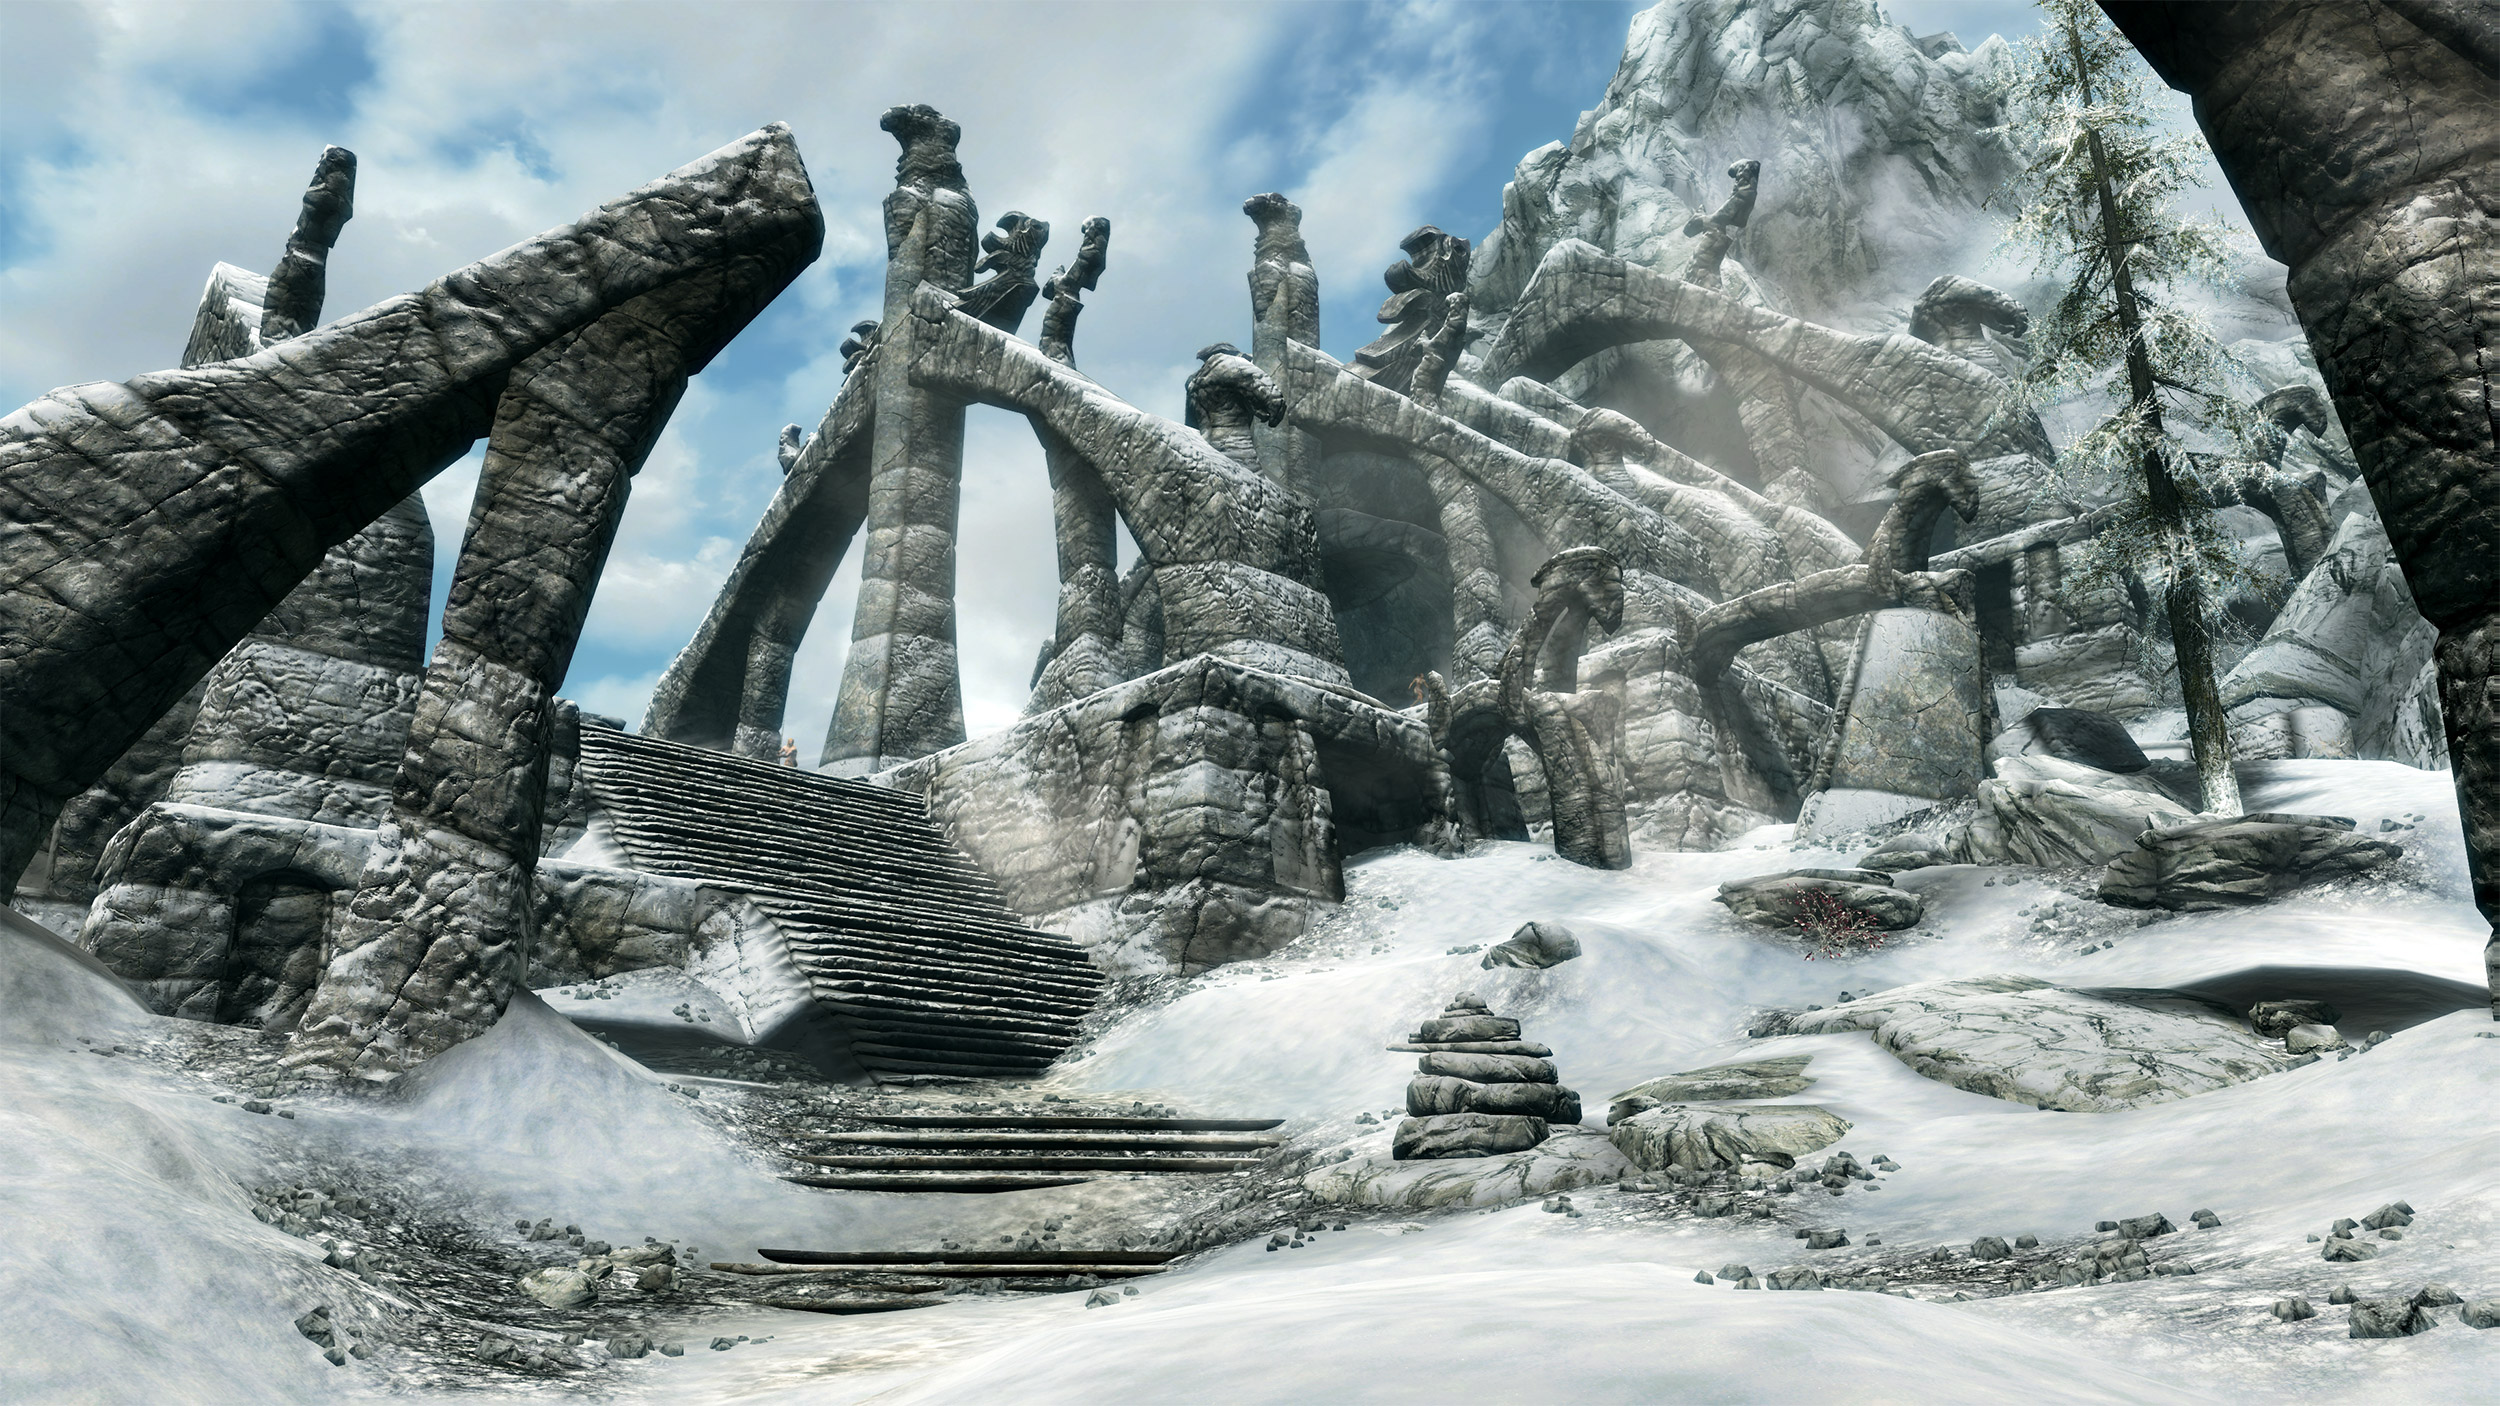 Skyrim Special Edition Guide - Mods, Guide, Tips, and Every